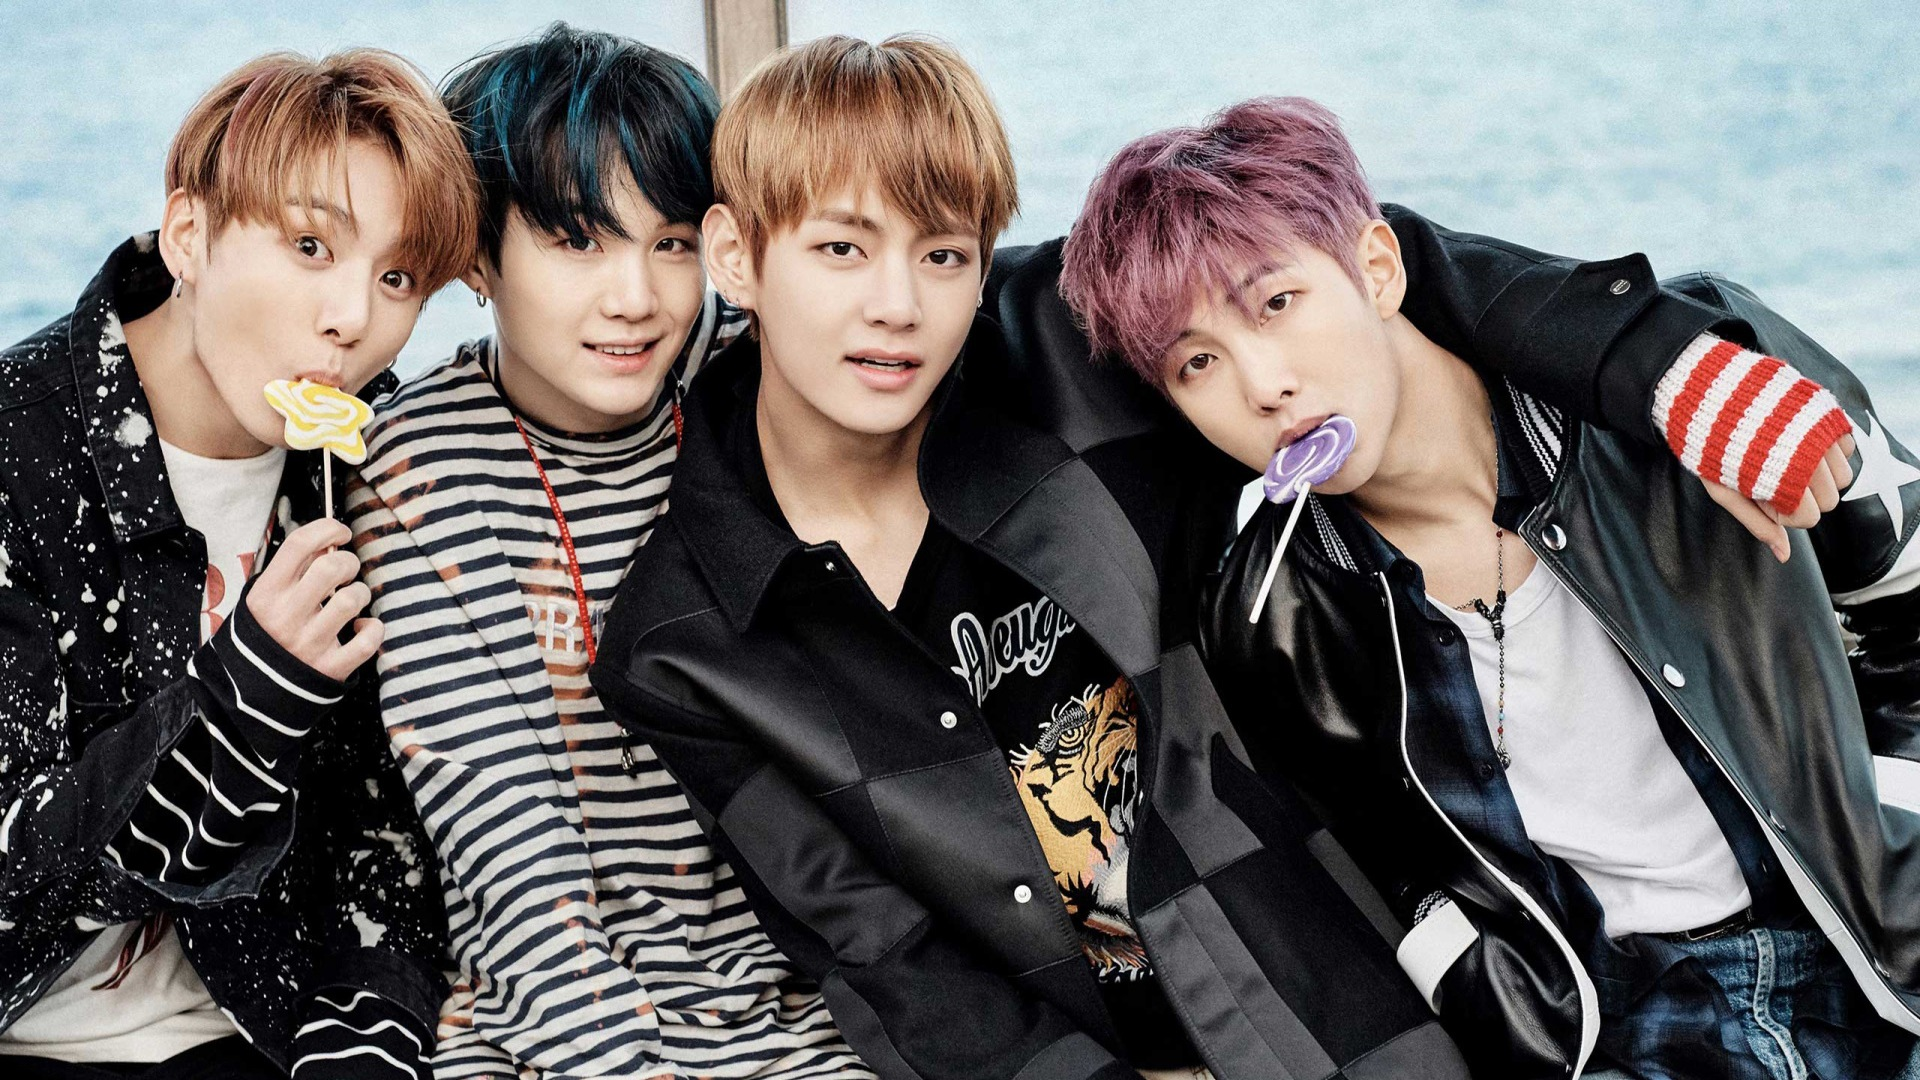 BTS Rap Monster images bts jungkook suga v and namjoon HD 1920x1080